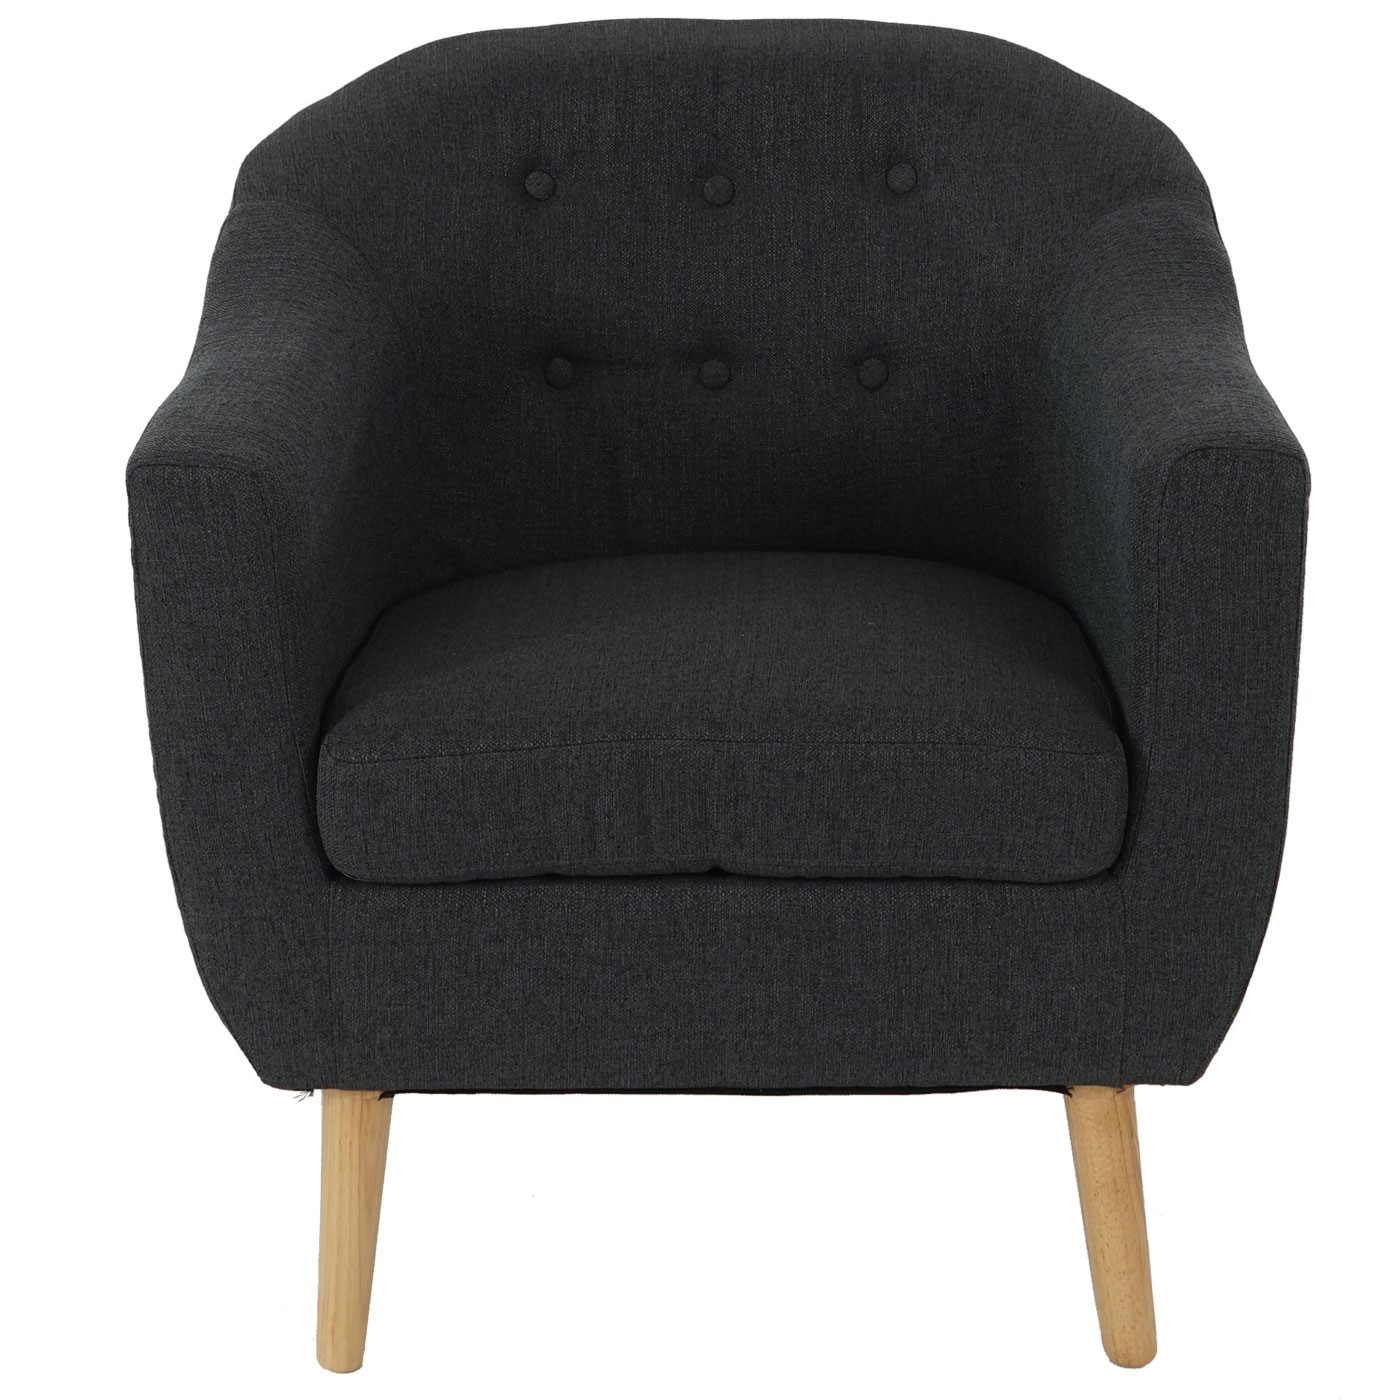 sessel malm t314 loungesessel polstersessel retro 50er jahre design anthrazit textil. Black Bedroom Furniture Sets. Home Design Ideas